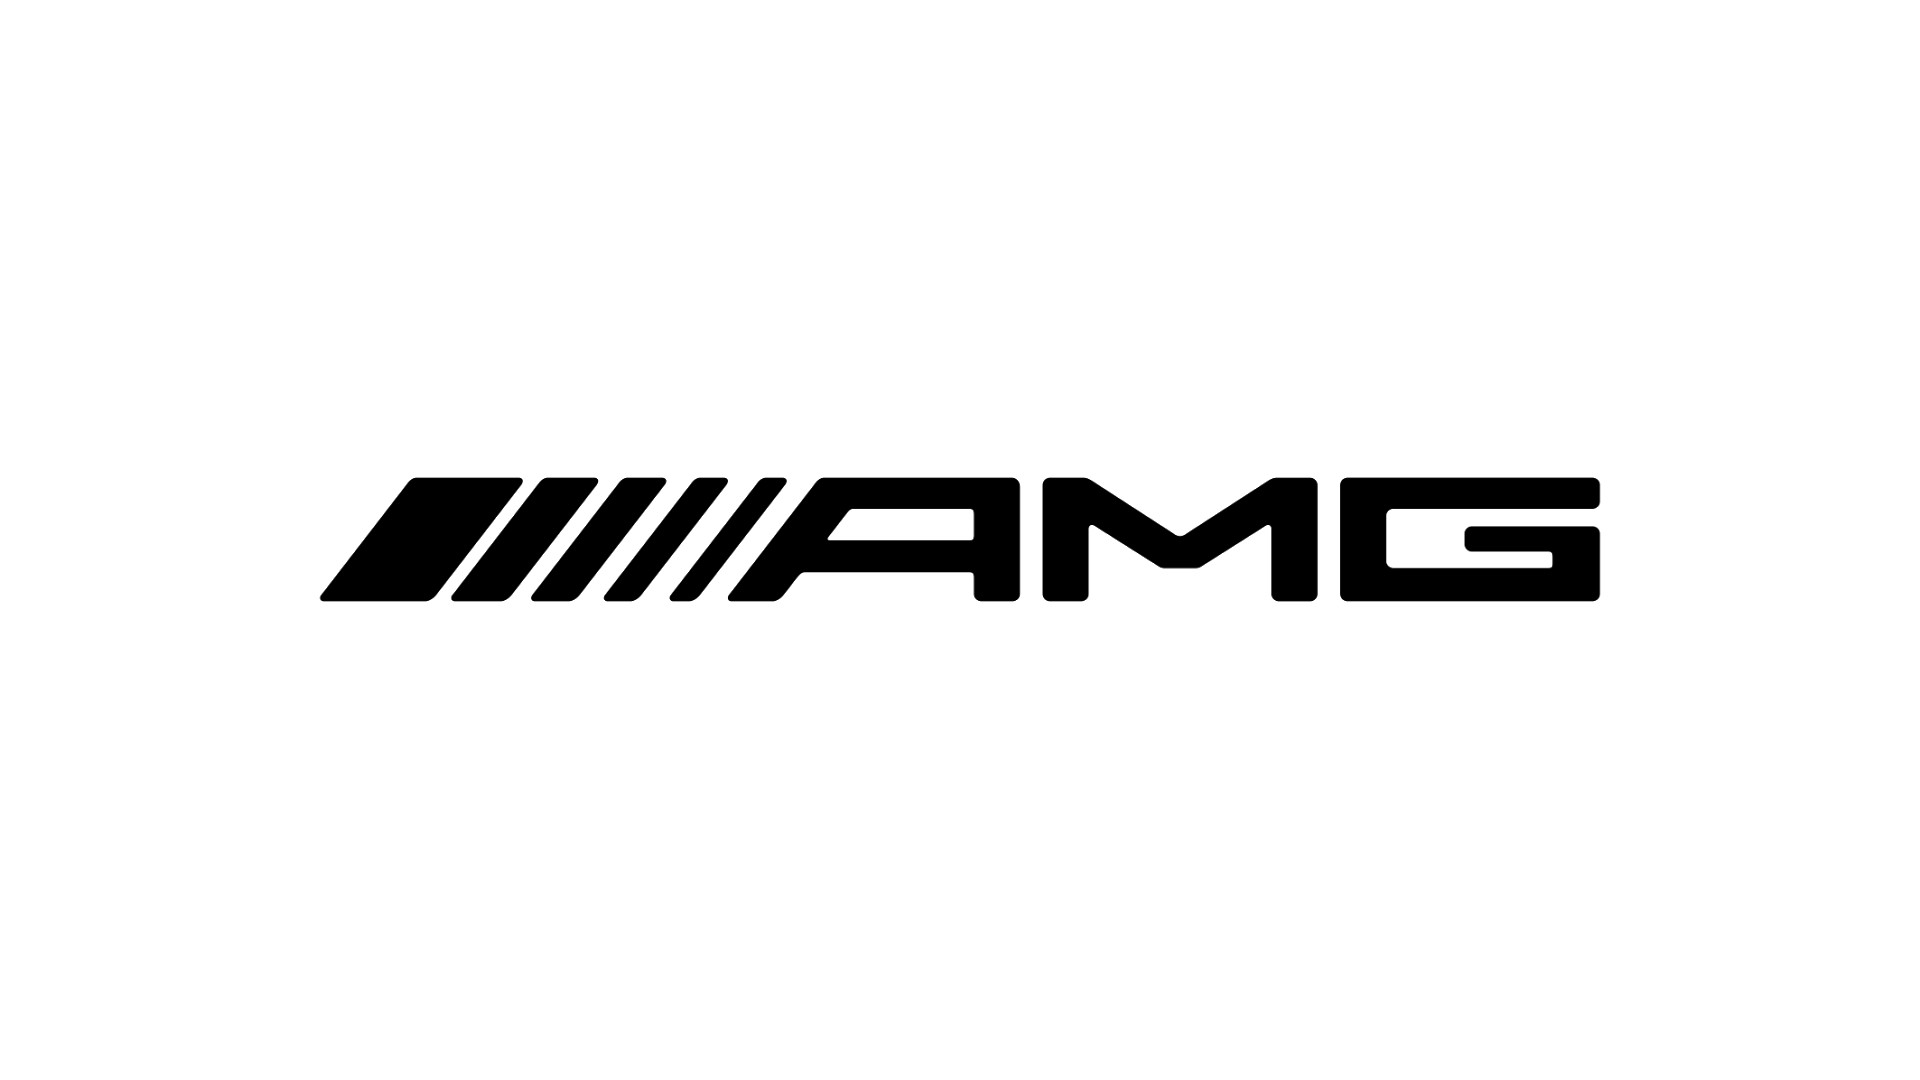 67 Amg Logo Wallpapers On WallpaperPlay 917924   PNG Images   PNGio 1920x1080